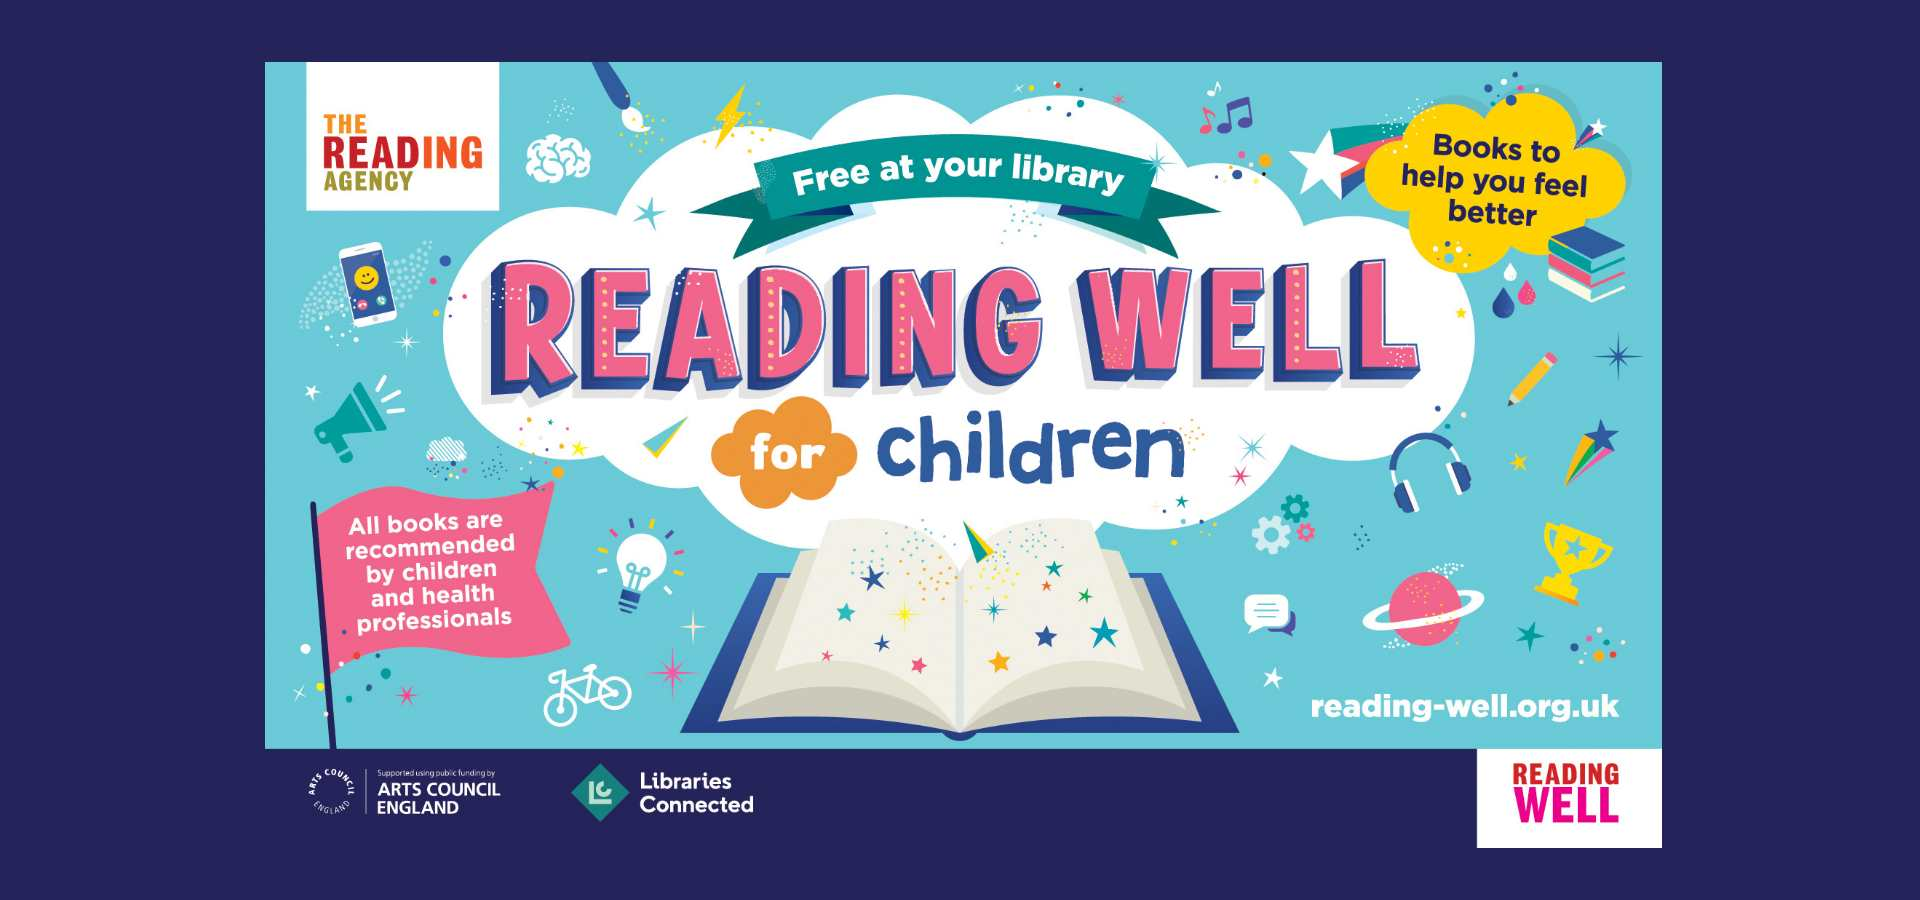 Reading Well for Children logo with books to help you feel better message